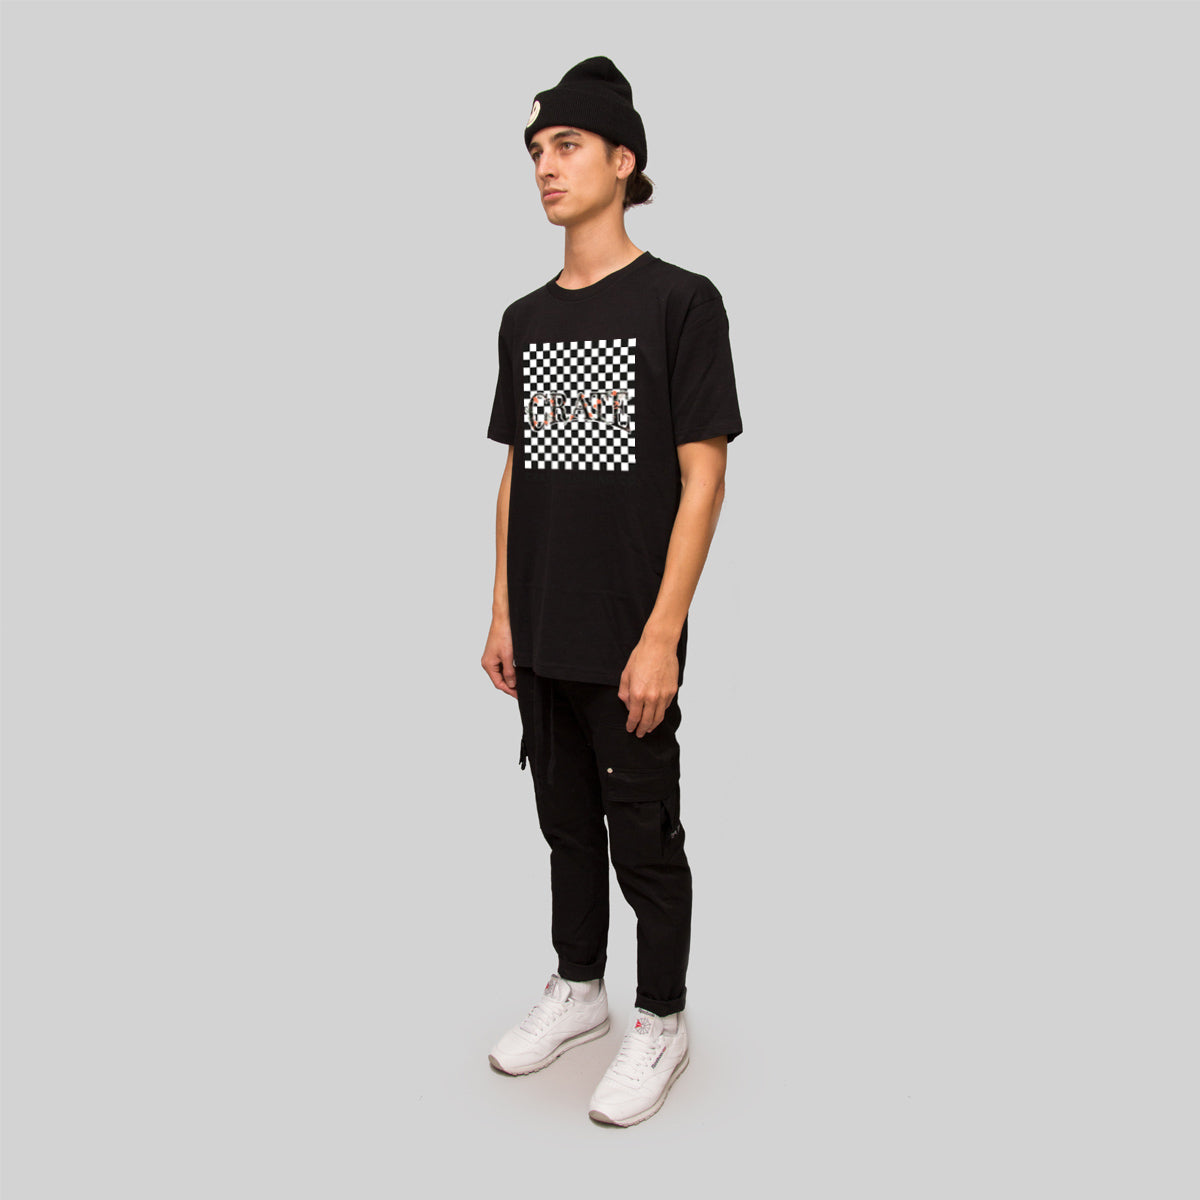 Mens Checkered Vine T-Shirt Black